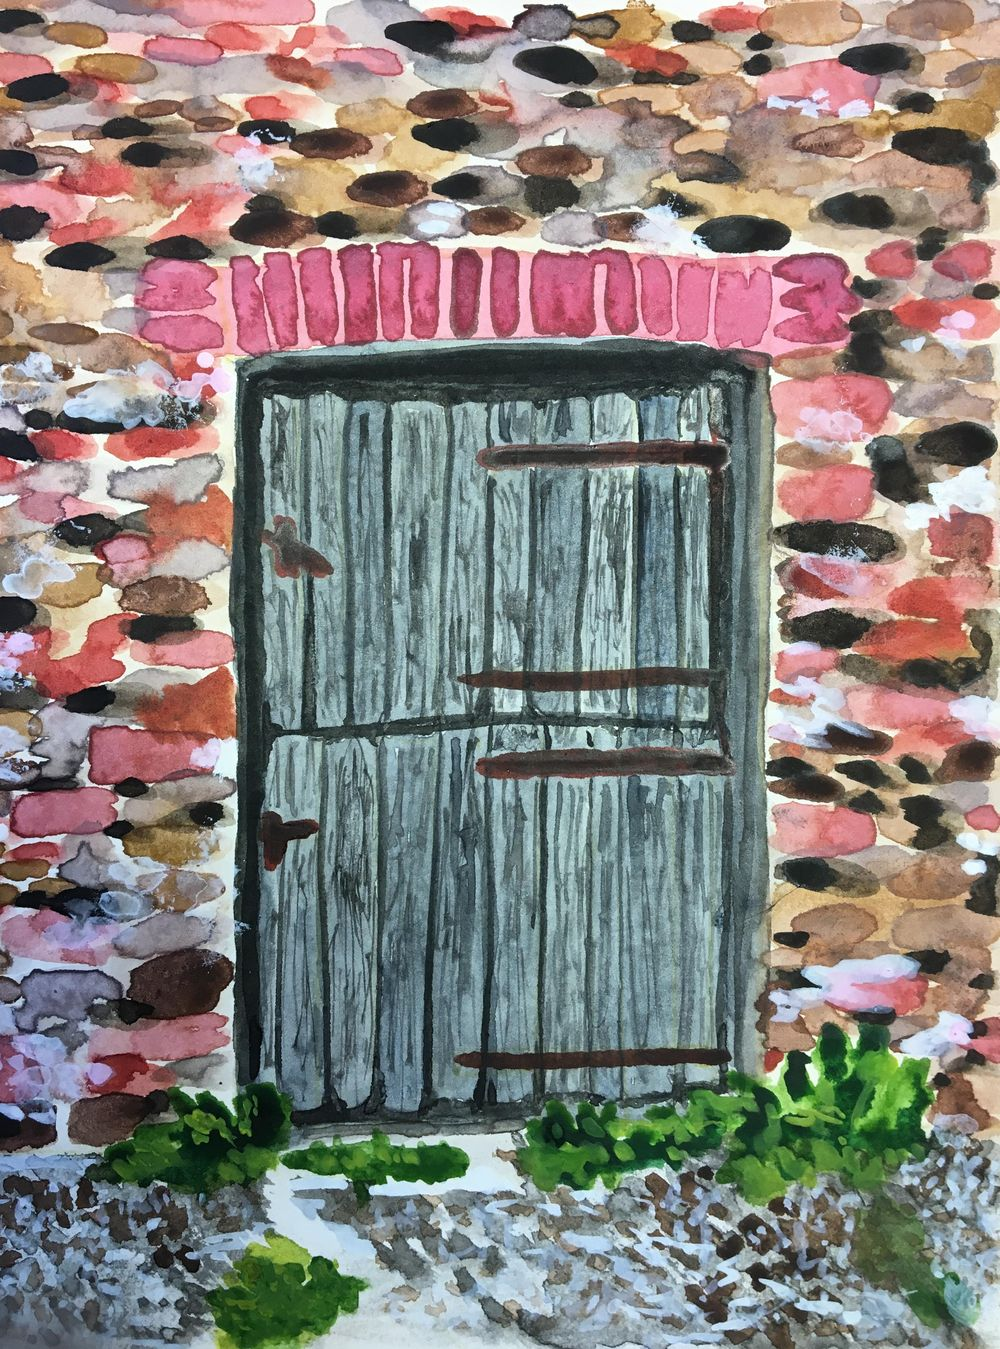 Day 1 Barndoor - image 1 - student project